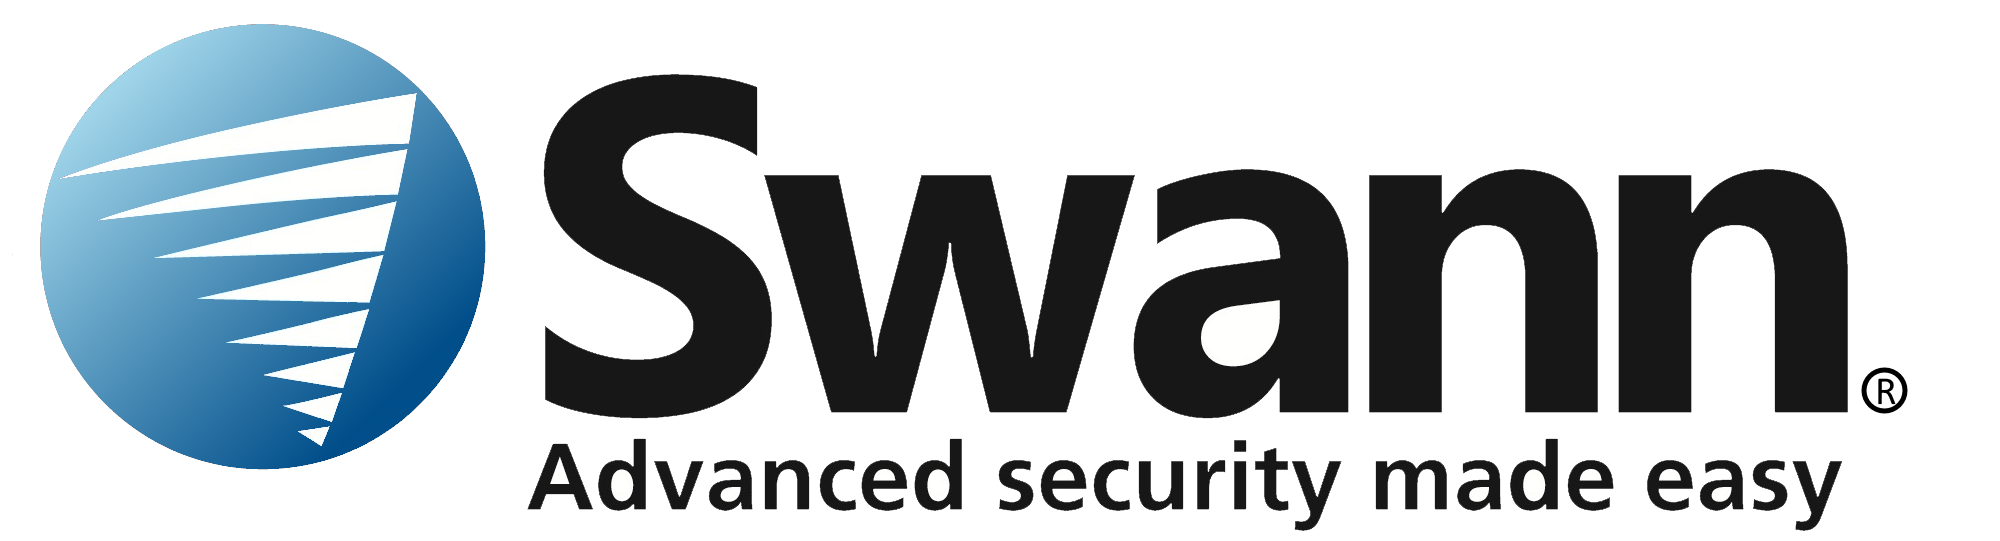 Swann Logo for security Cameras